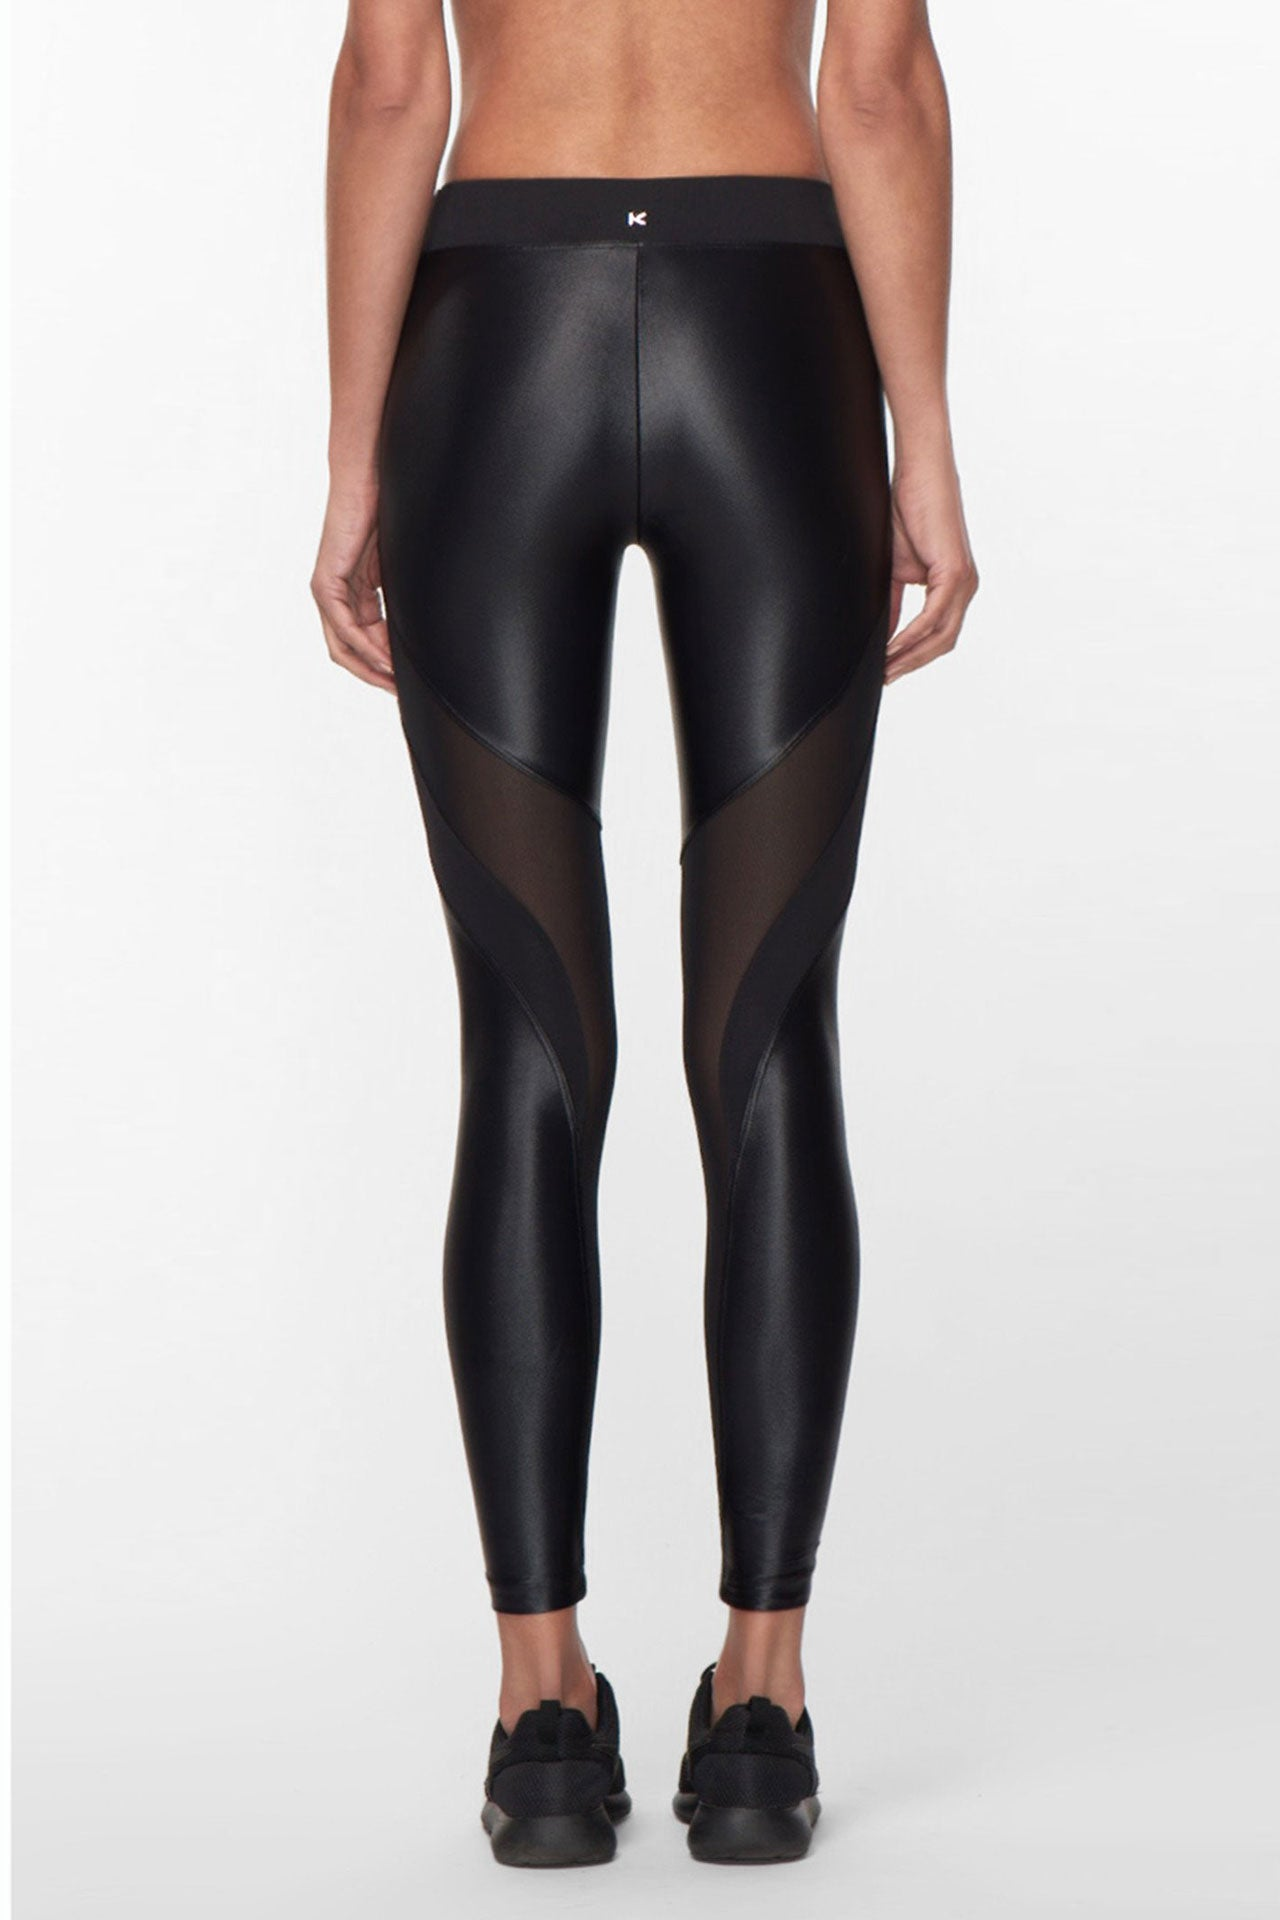 Koral Frame Legging - Black - Sculptique